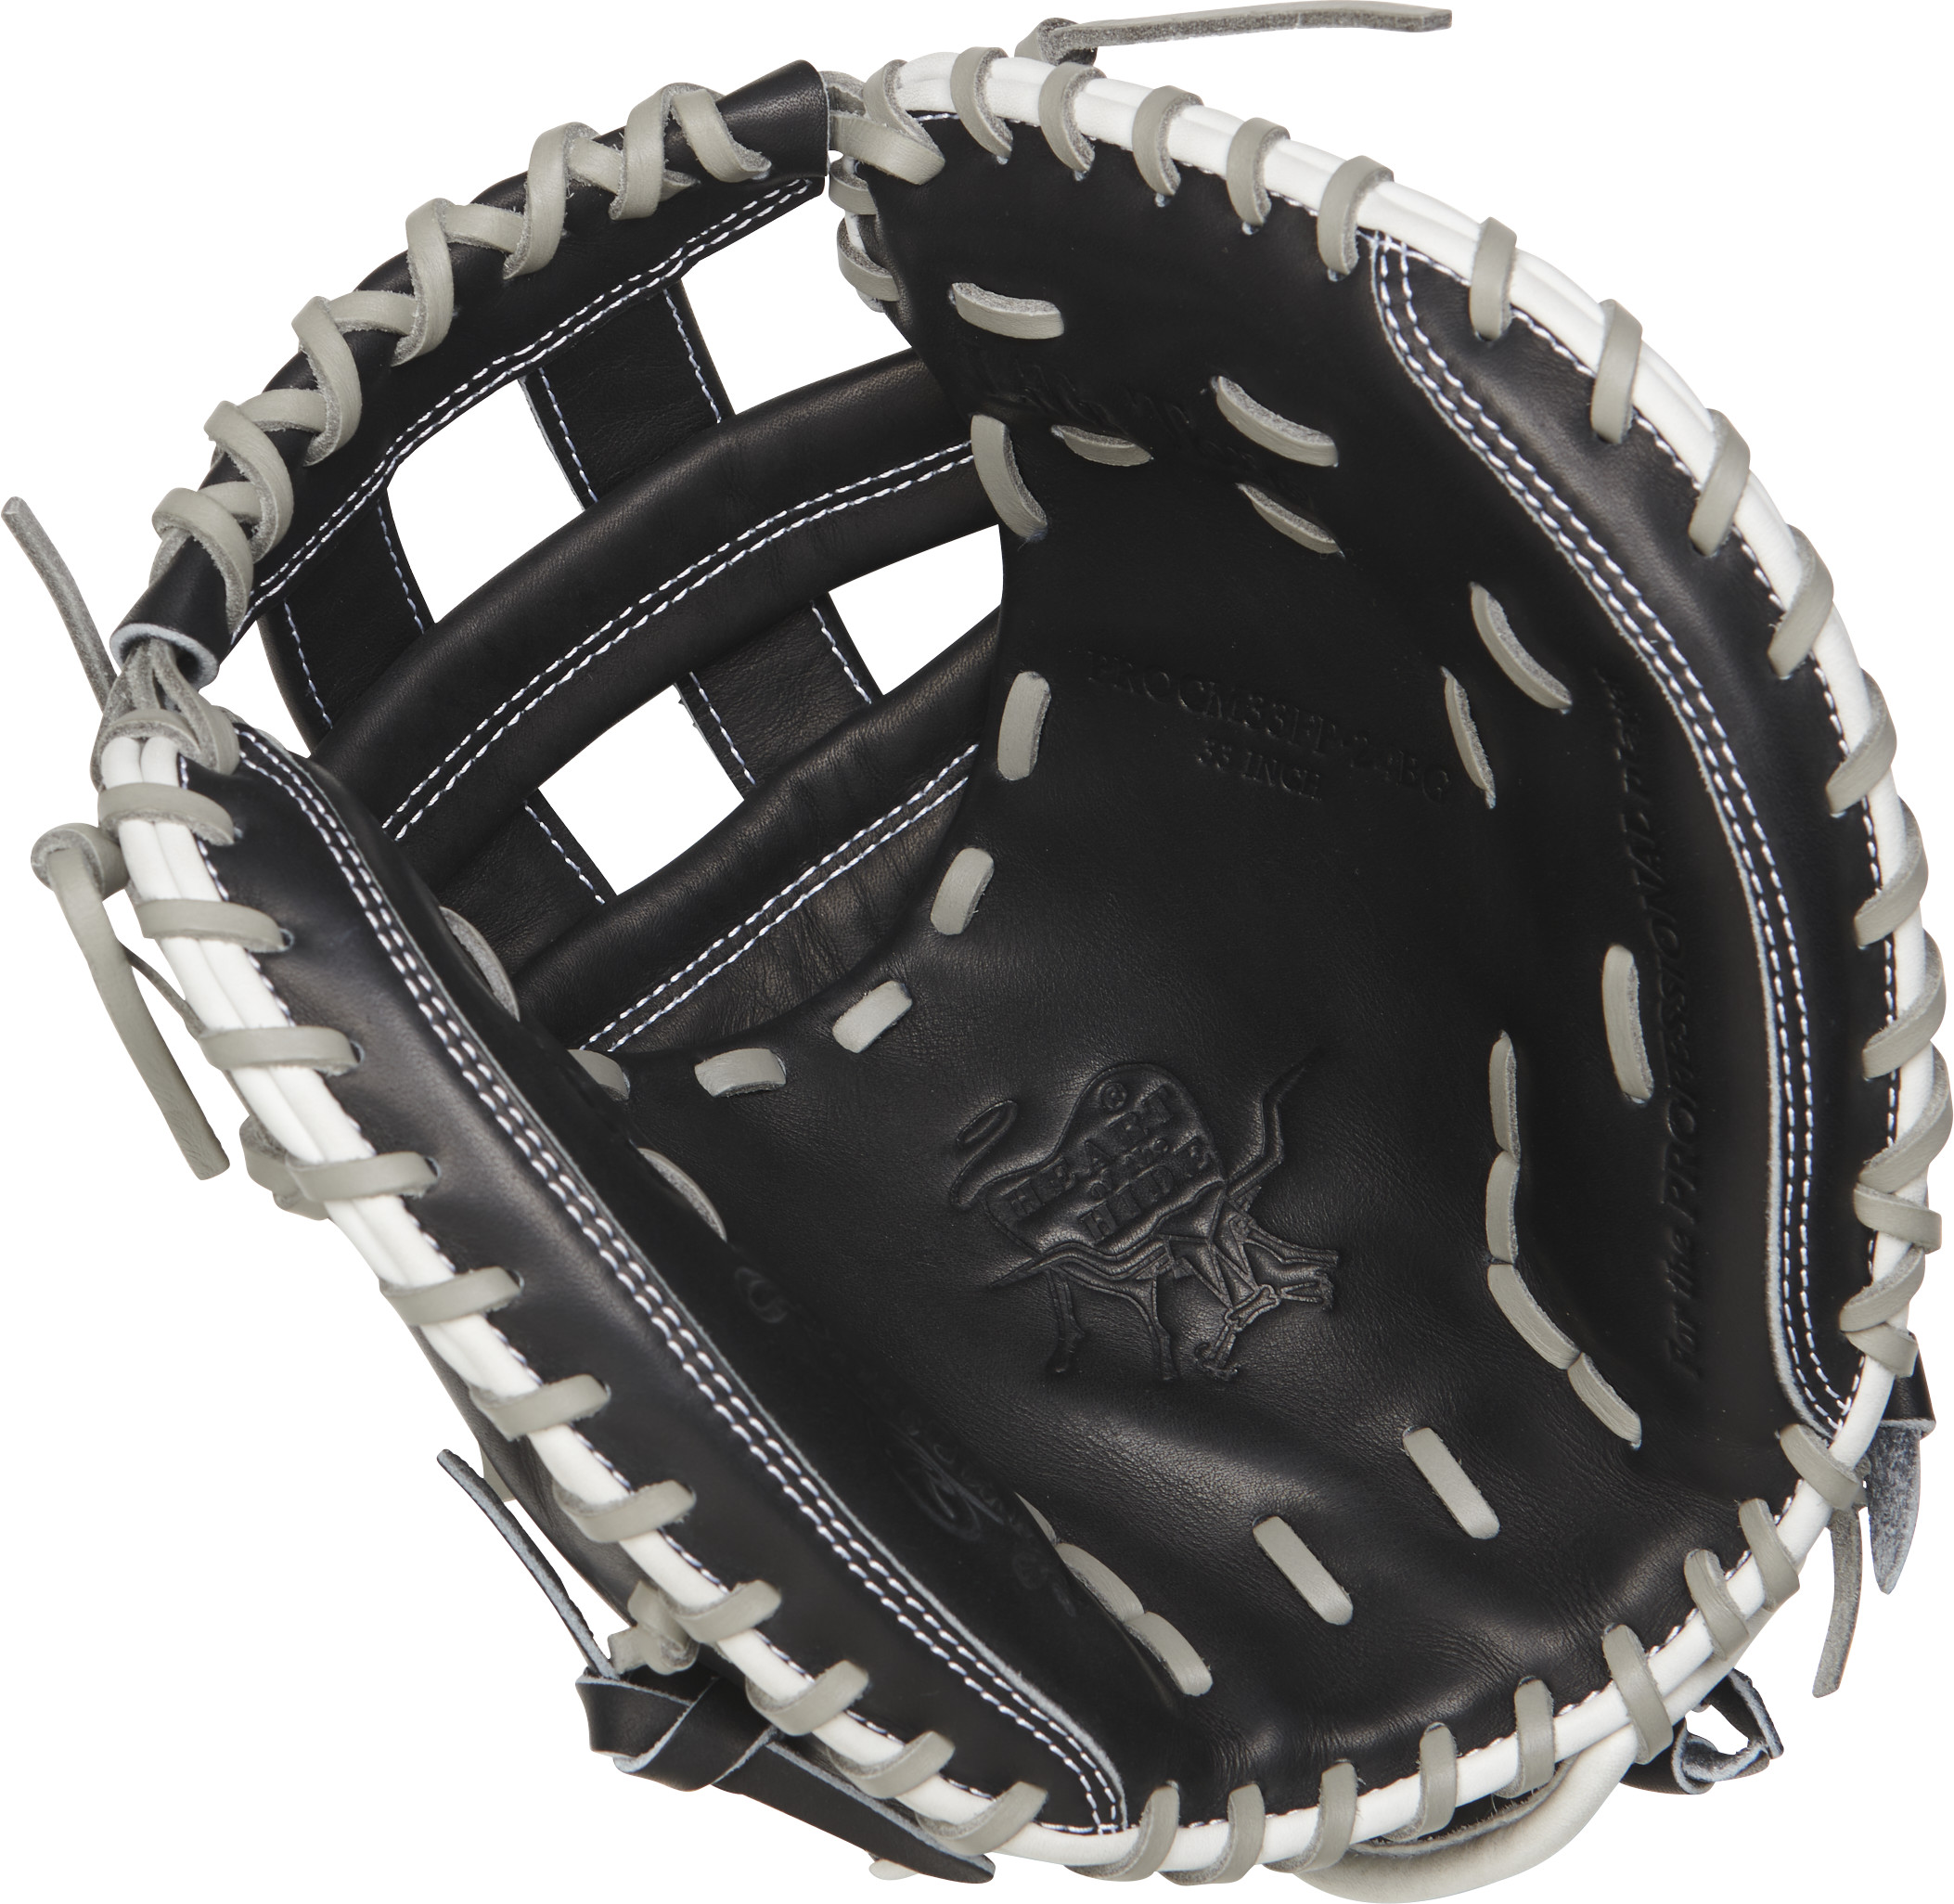 http://www.bestbatdeals.com/images/gloves/rawlings/PROCM33FP-24BG-1.jpg